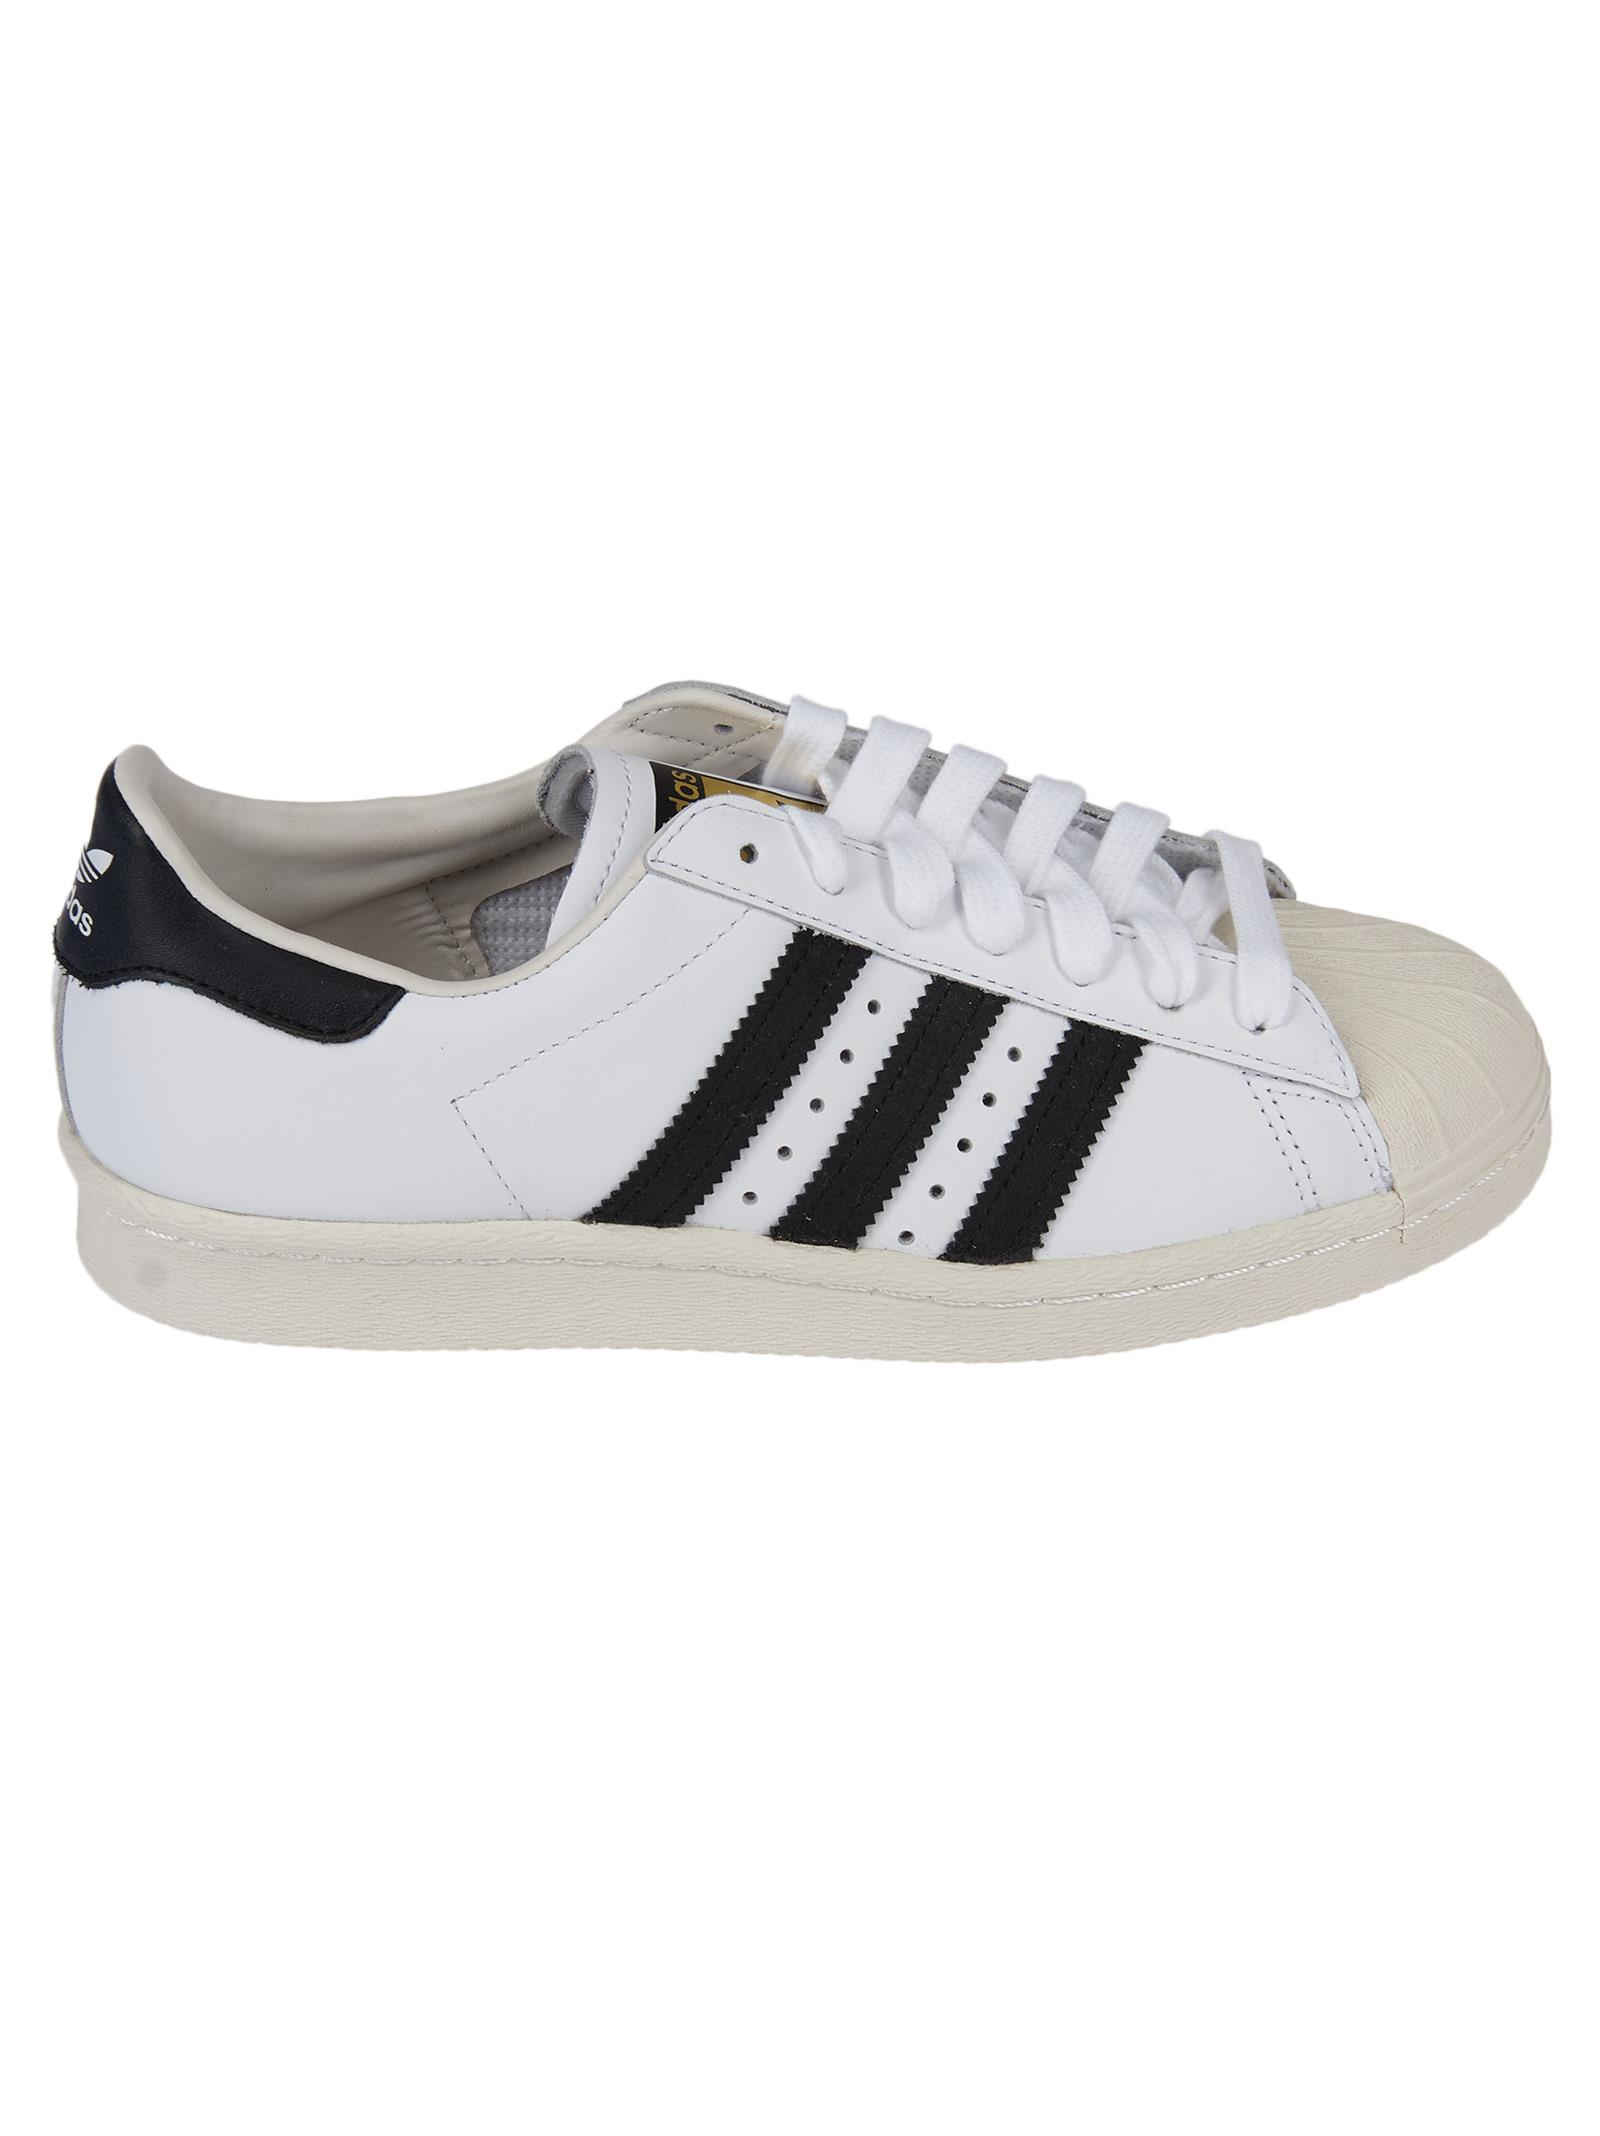 Adidas originals superstar sneakers men´s shoes lowest price